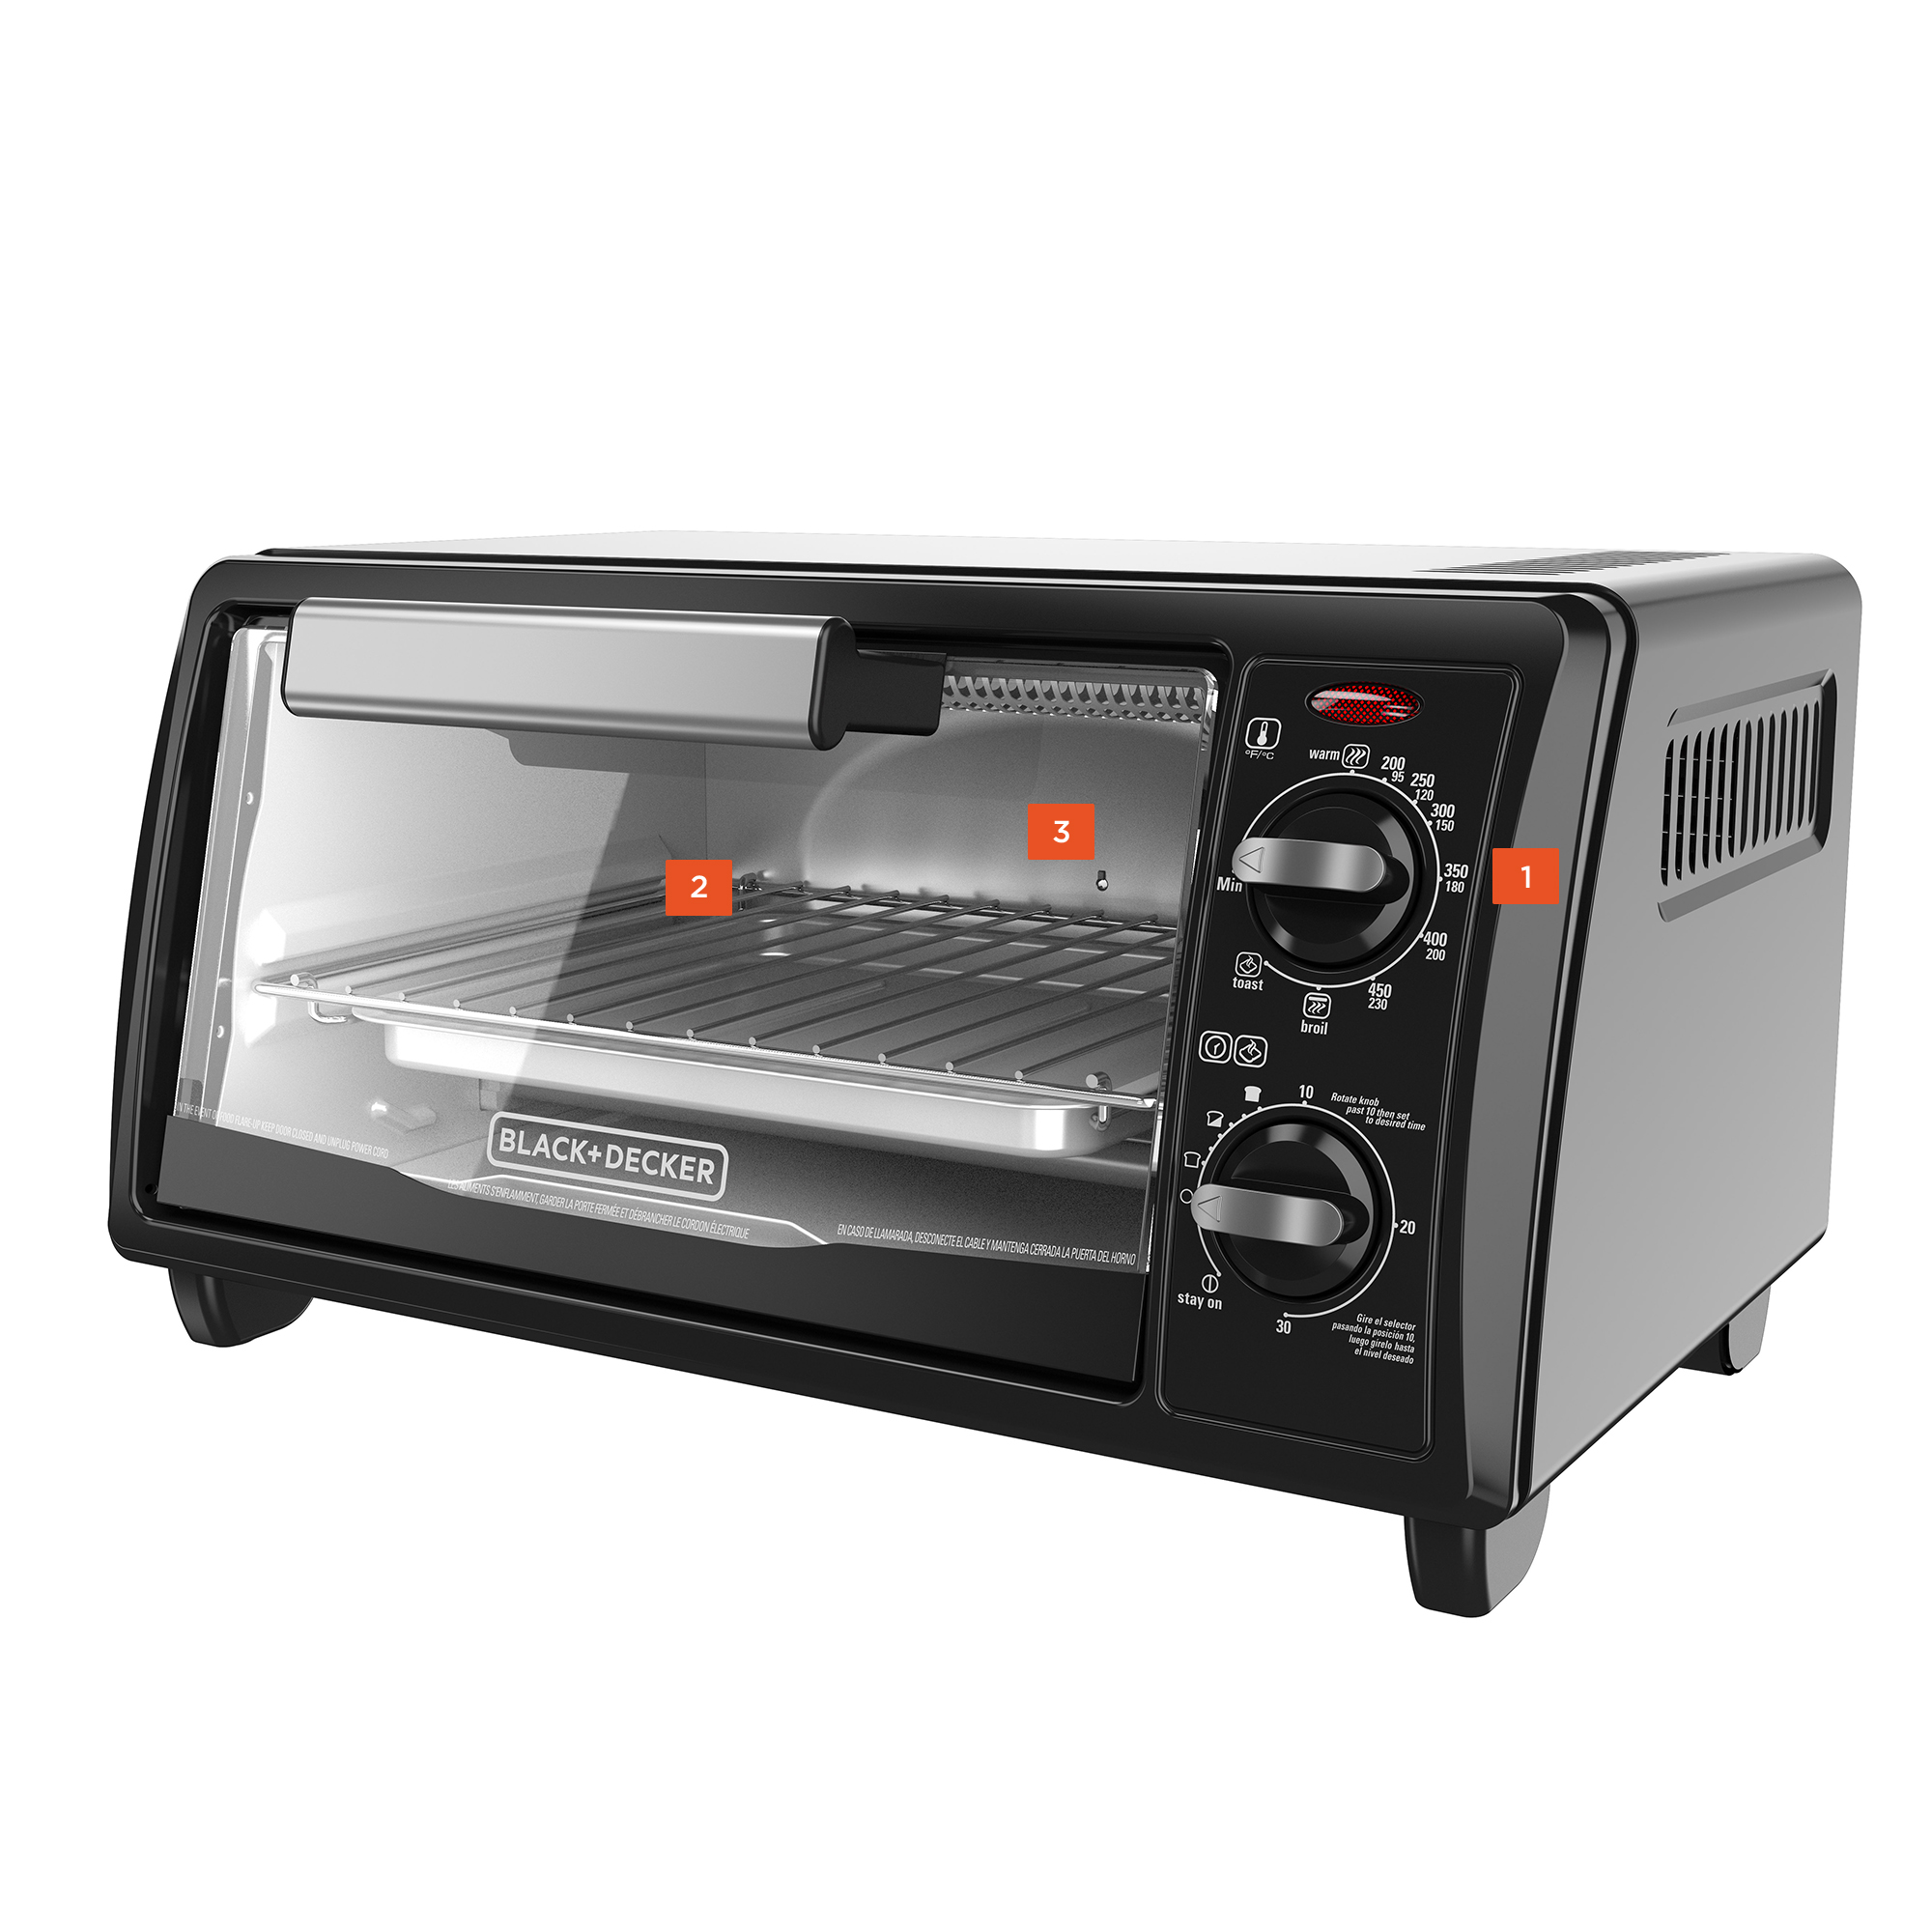 TO1342B.ashx?h=500&la=en&mh=500&mw=527&w=500 convection and toaster ovens cooking appliances black decker black and decker toaster oven wiring diagram at webbmarketing.co